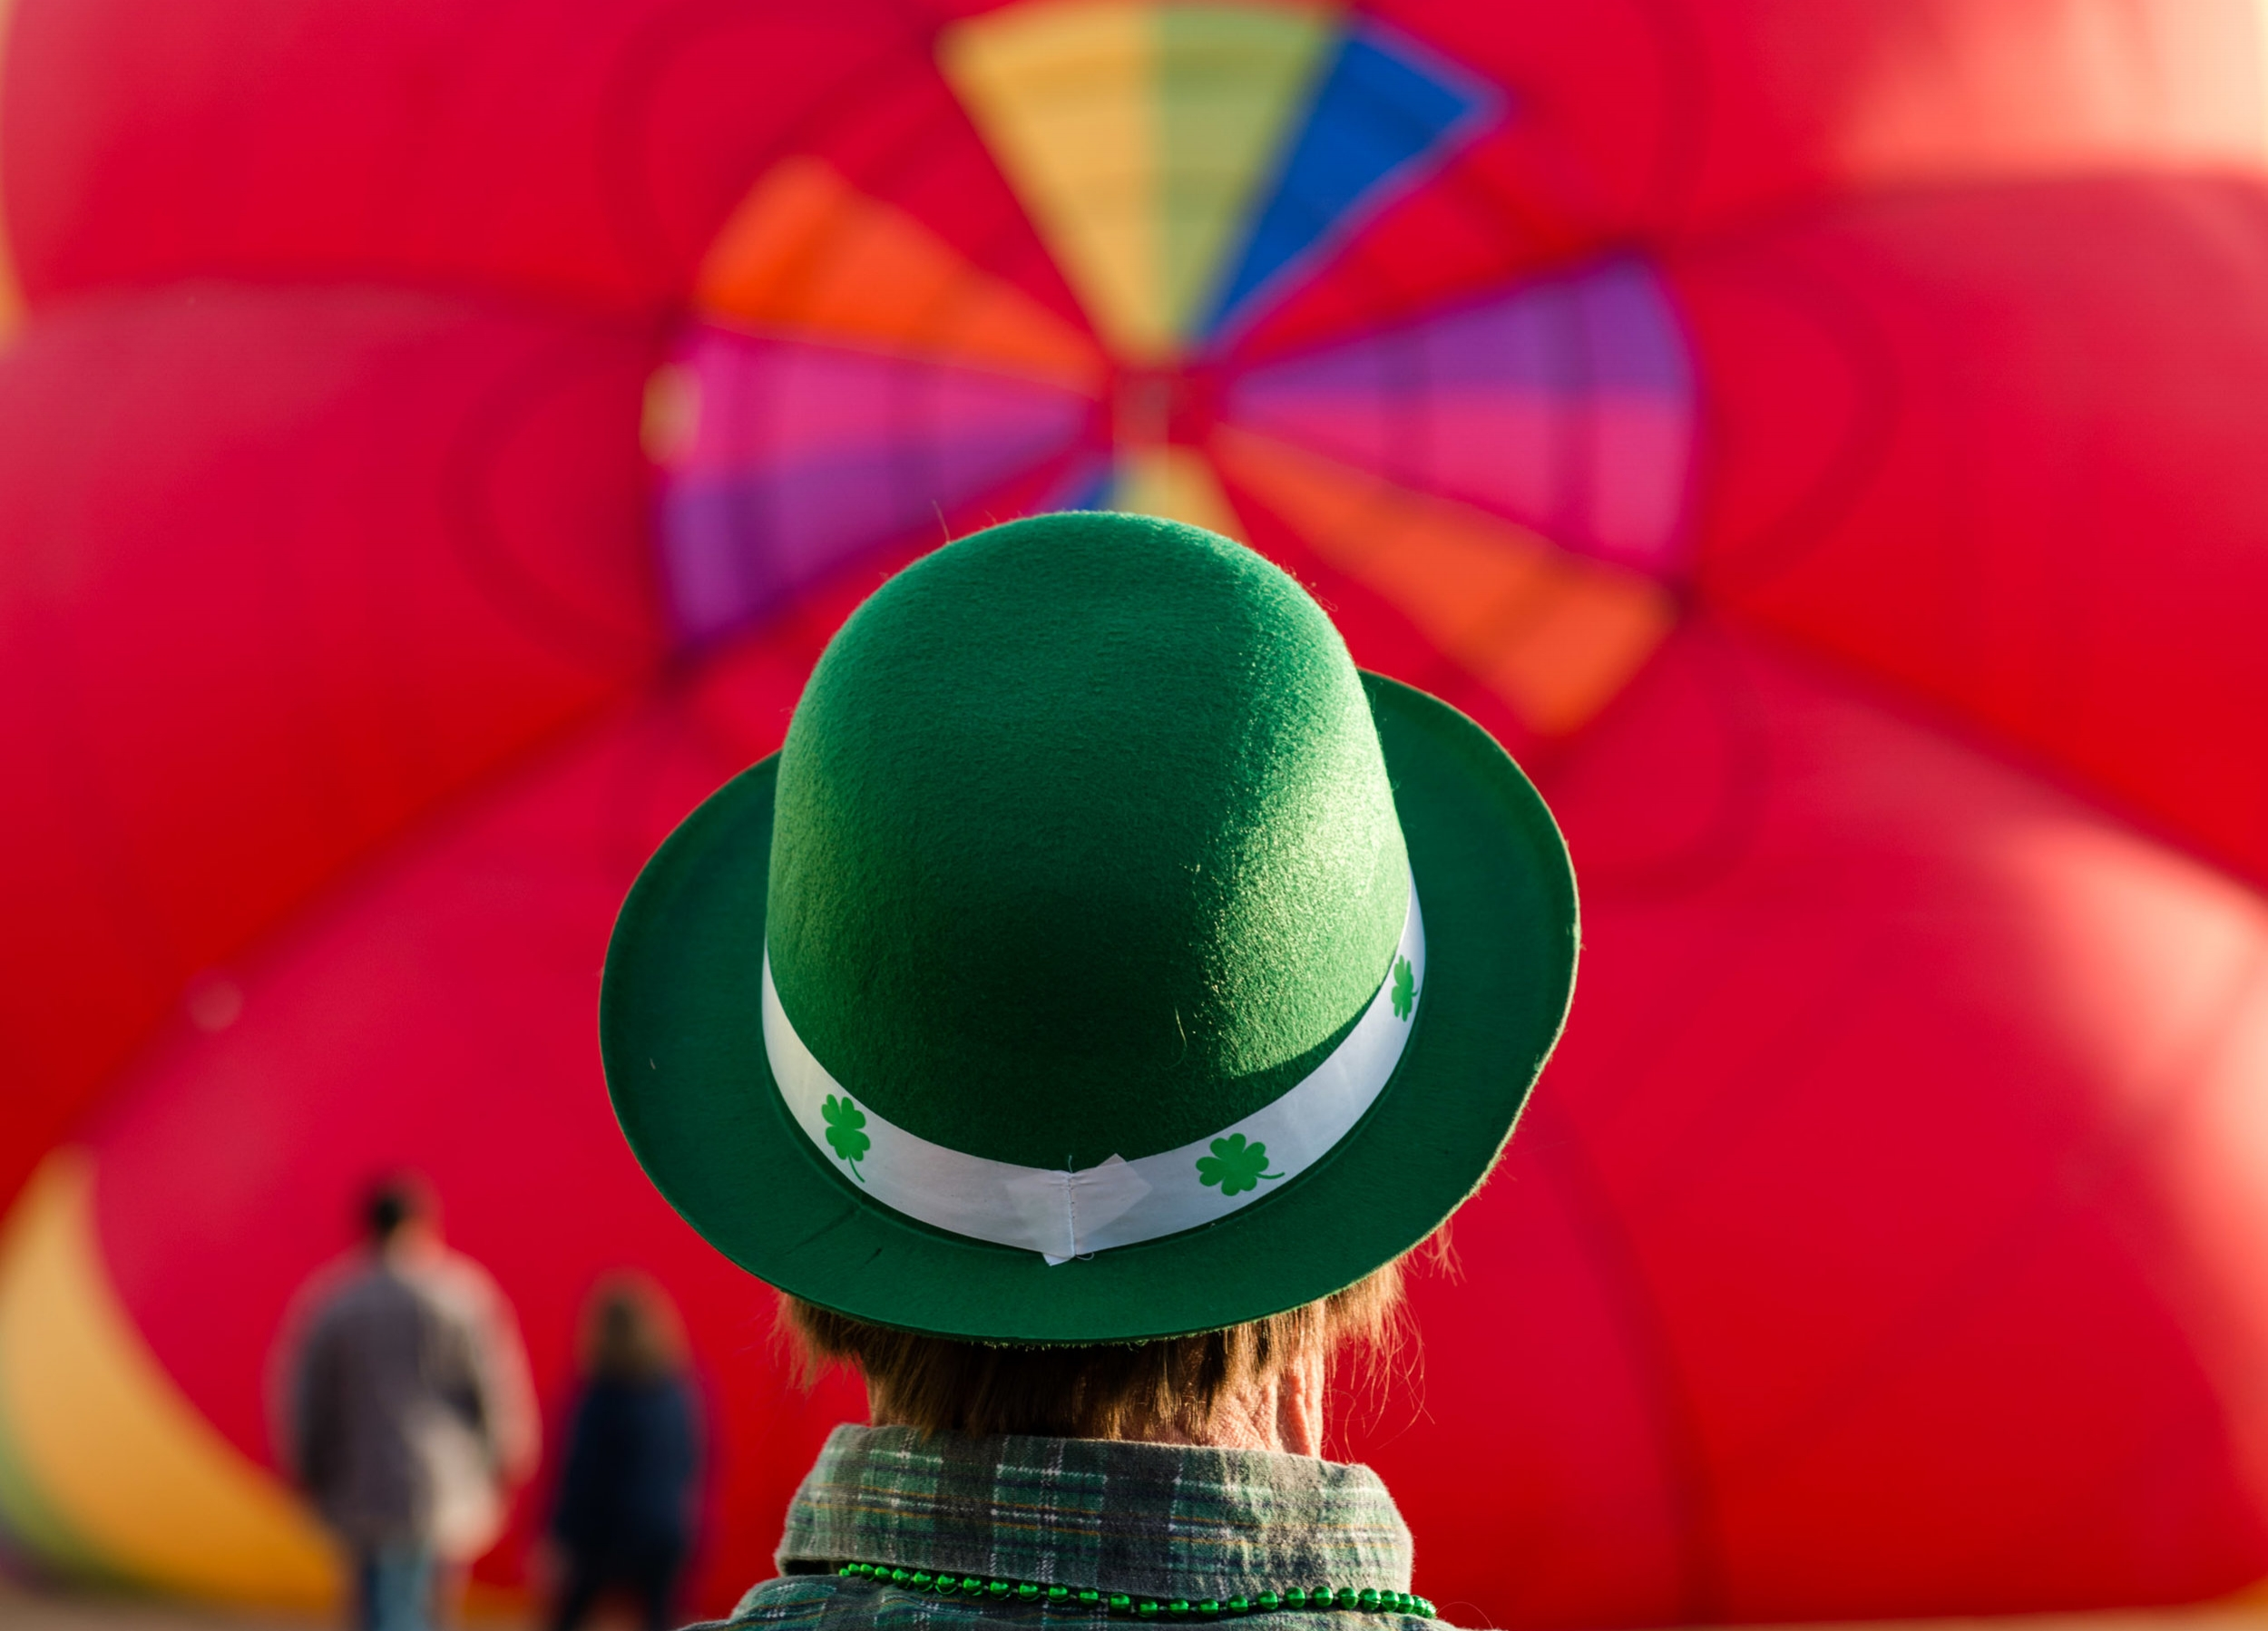 St Patrick's Day Balloon Rallye - Belen, New Mexico